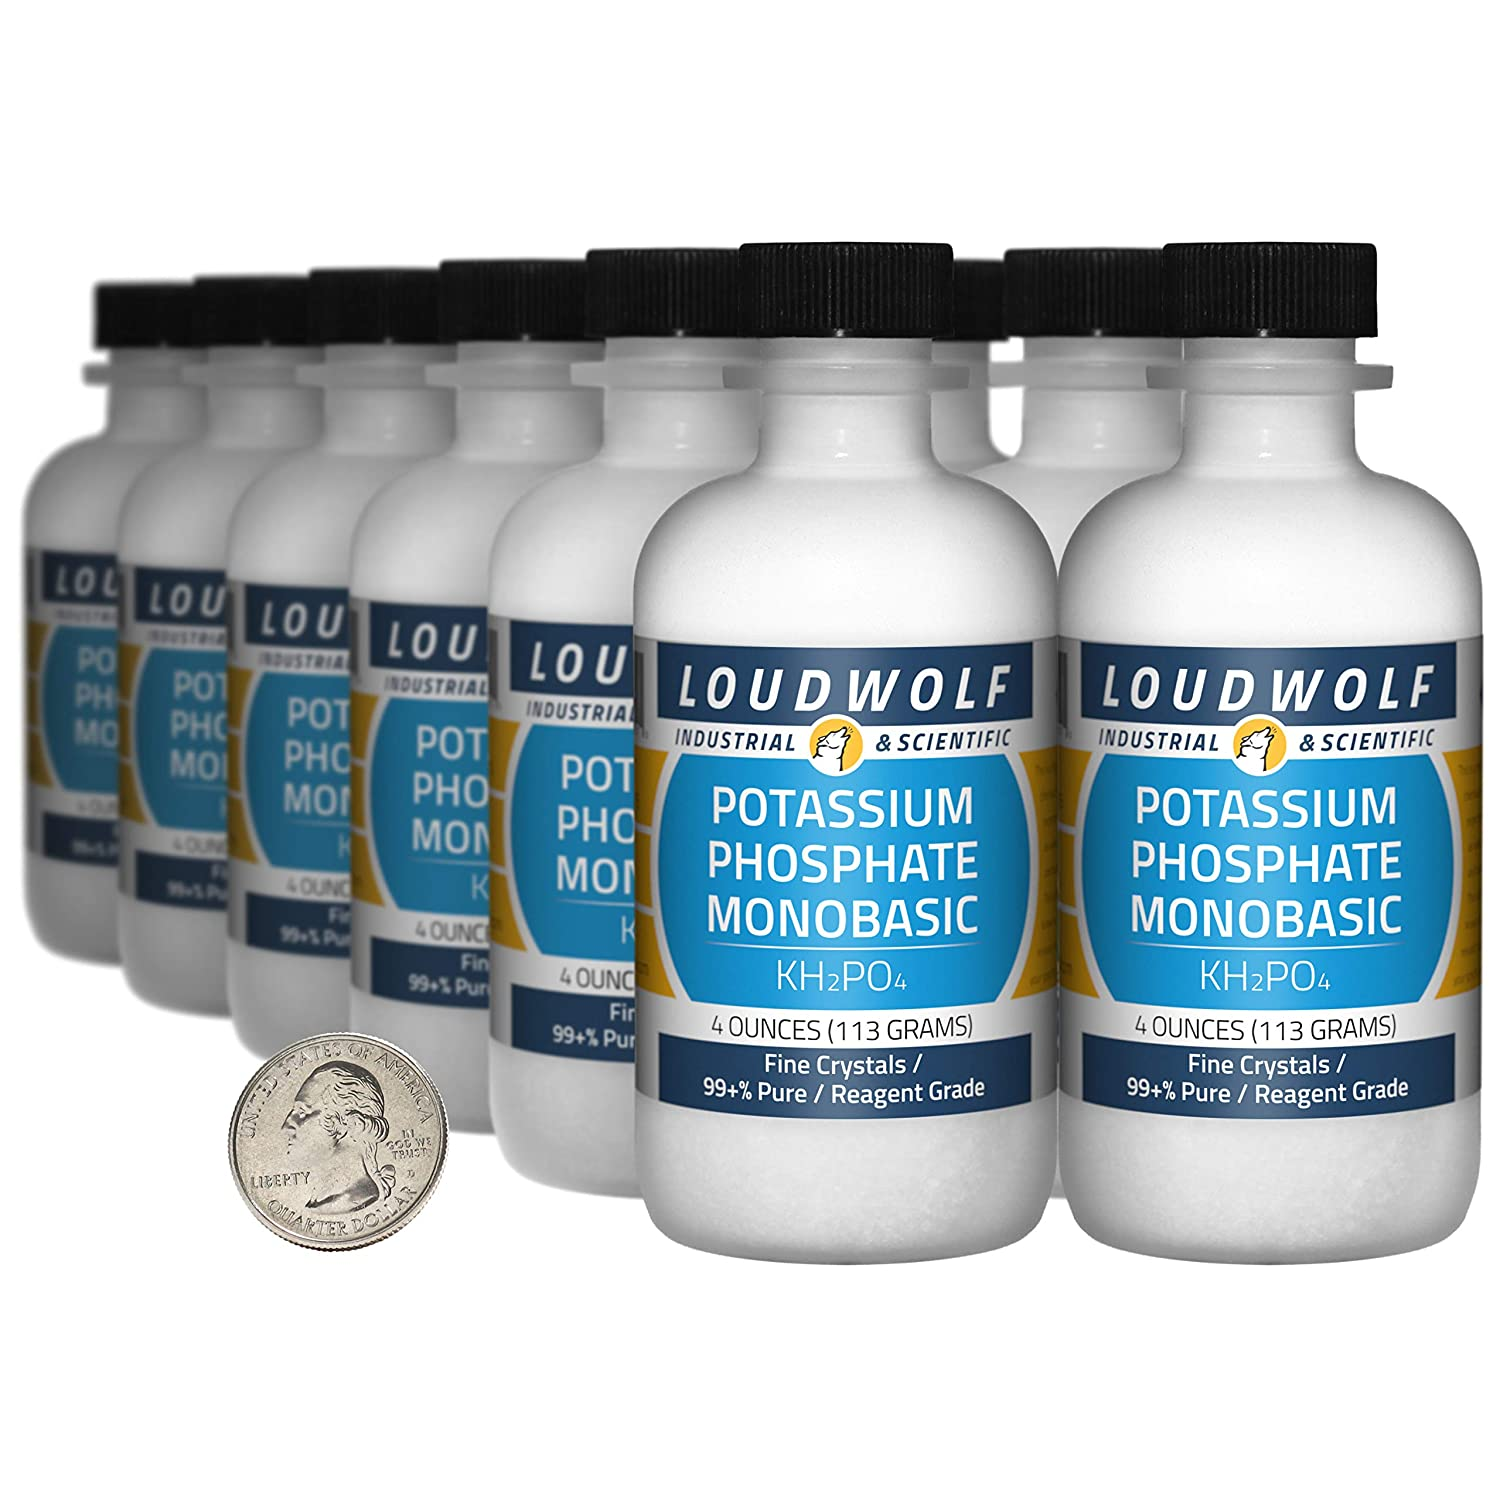 Potassium Phosphate Monobasic 3 Pounds Pur 12 99+% Bottles Fixed price Gorgeous for sale